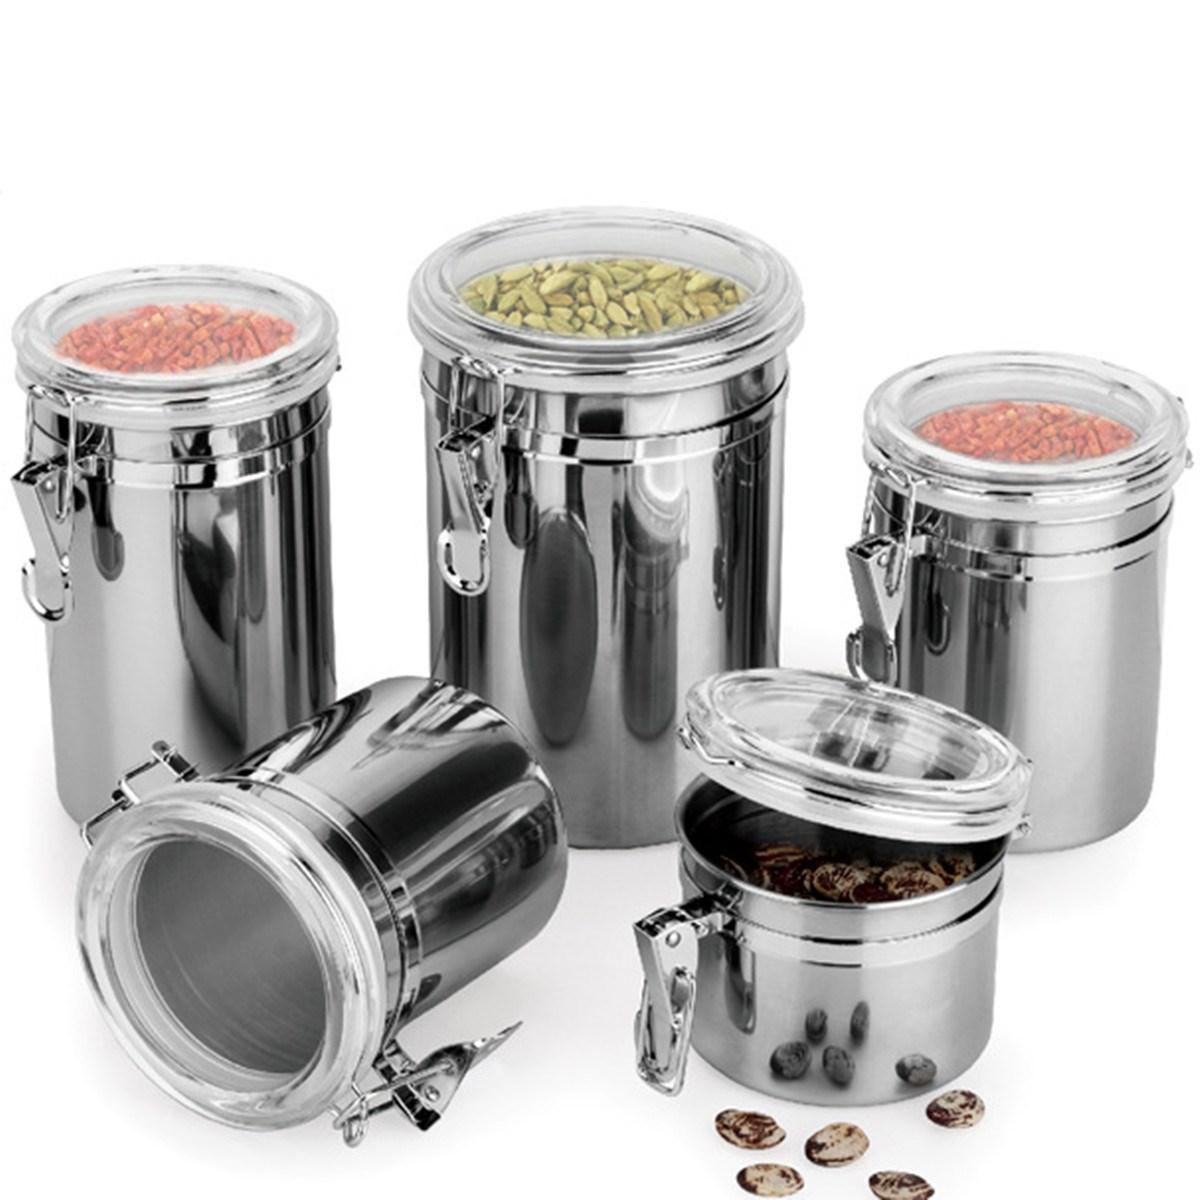 Stainless steel storage containers for kitchen - 2017 Wholesale Silver Round Storage Food Bottles Sugar Tea Coffee Beans Canisters Kitchen Container Cooking Tools From Lailaihangdao 21 99 Dhgate Com